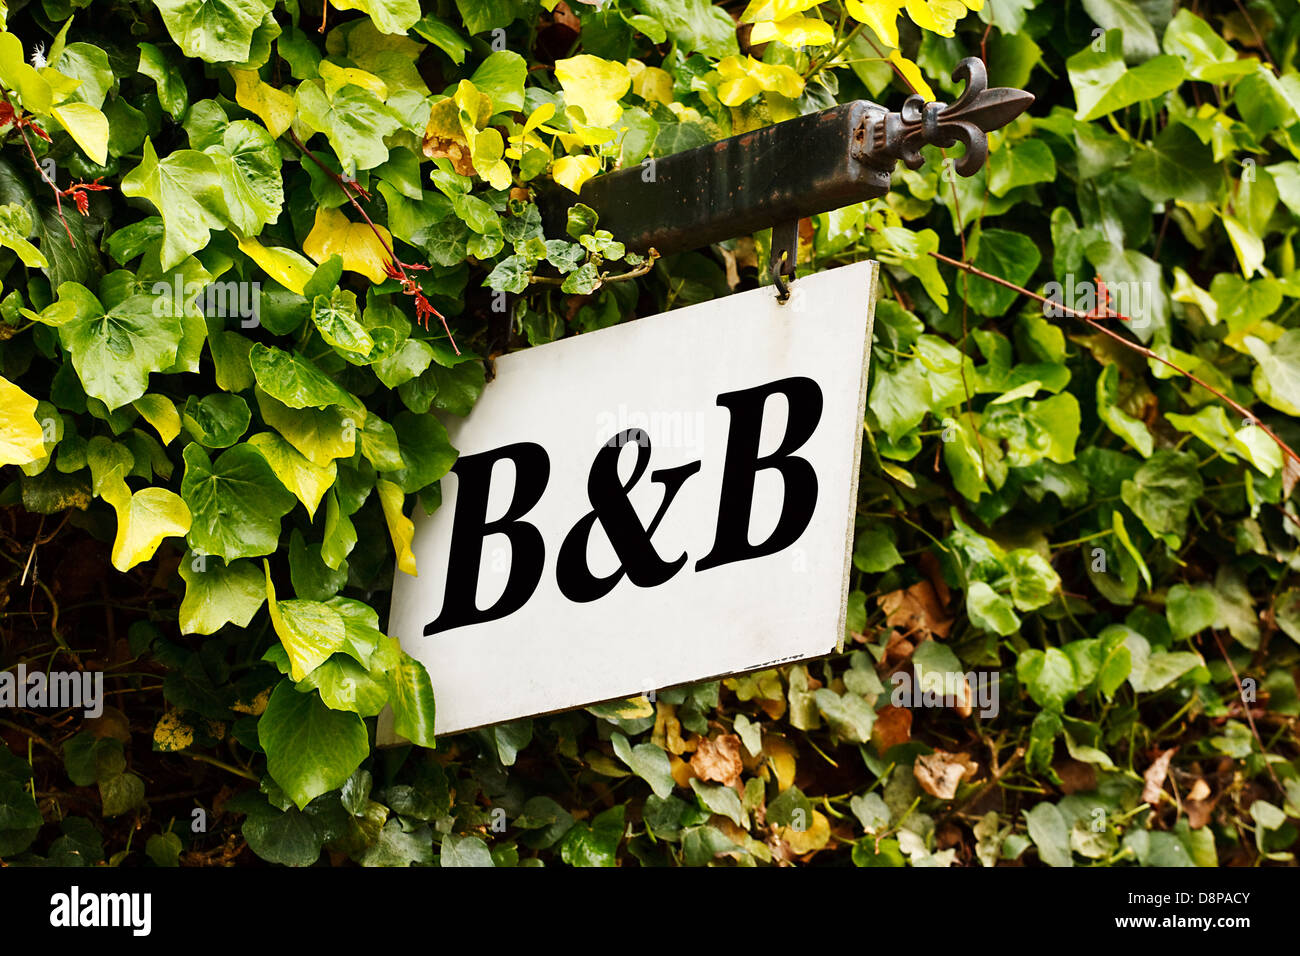 Traditional Bed and breakfast sign surrounded by an ivy creeper - Stock Image